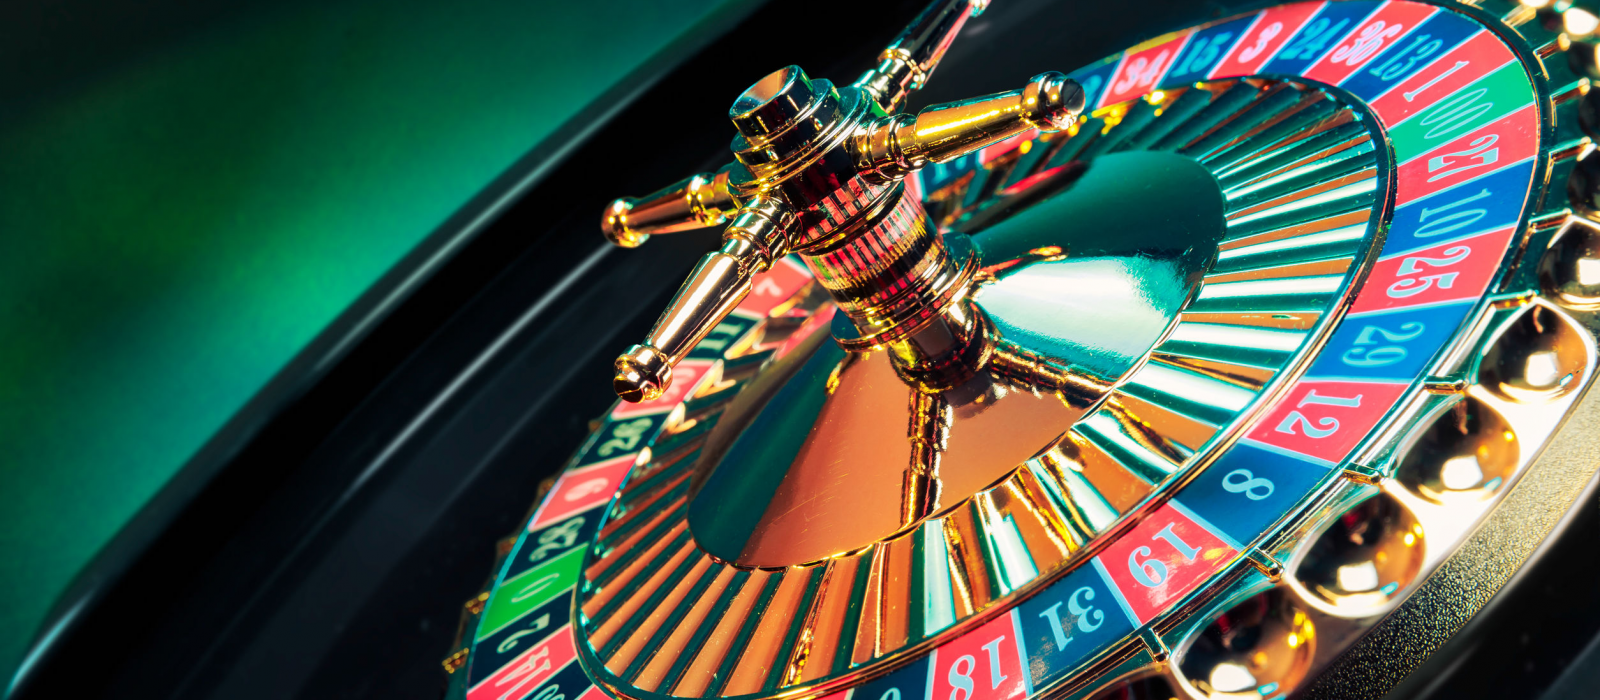 Les plus beaux casinos de France